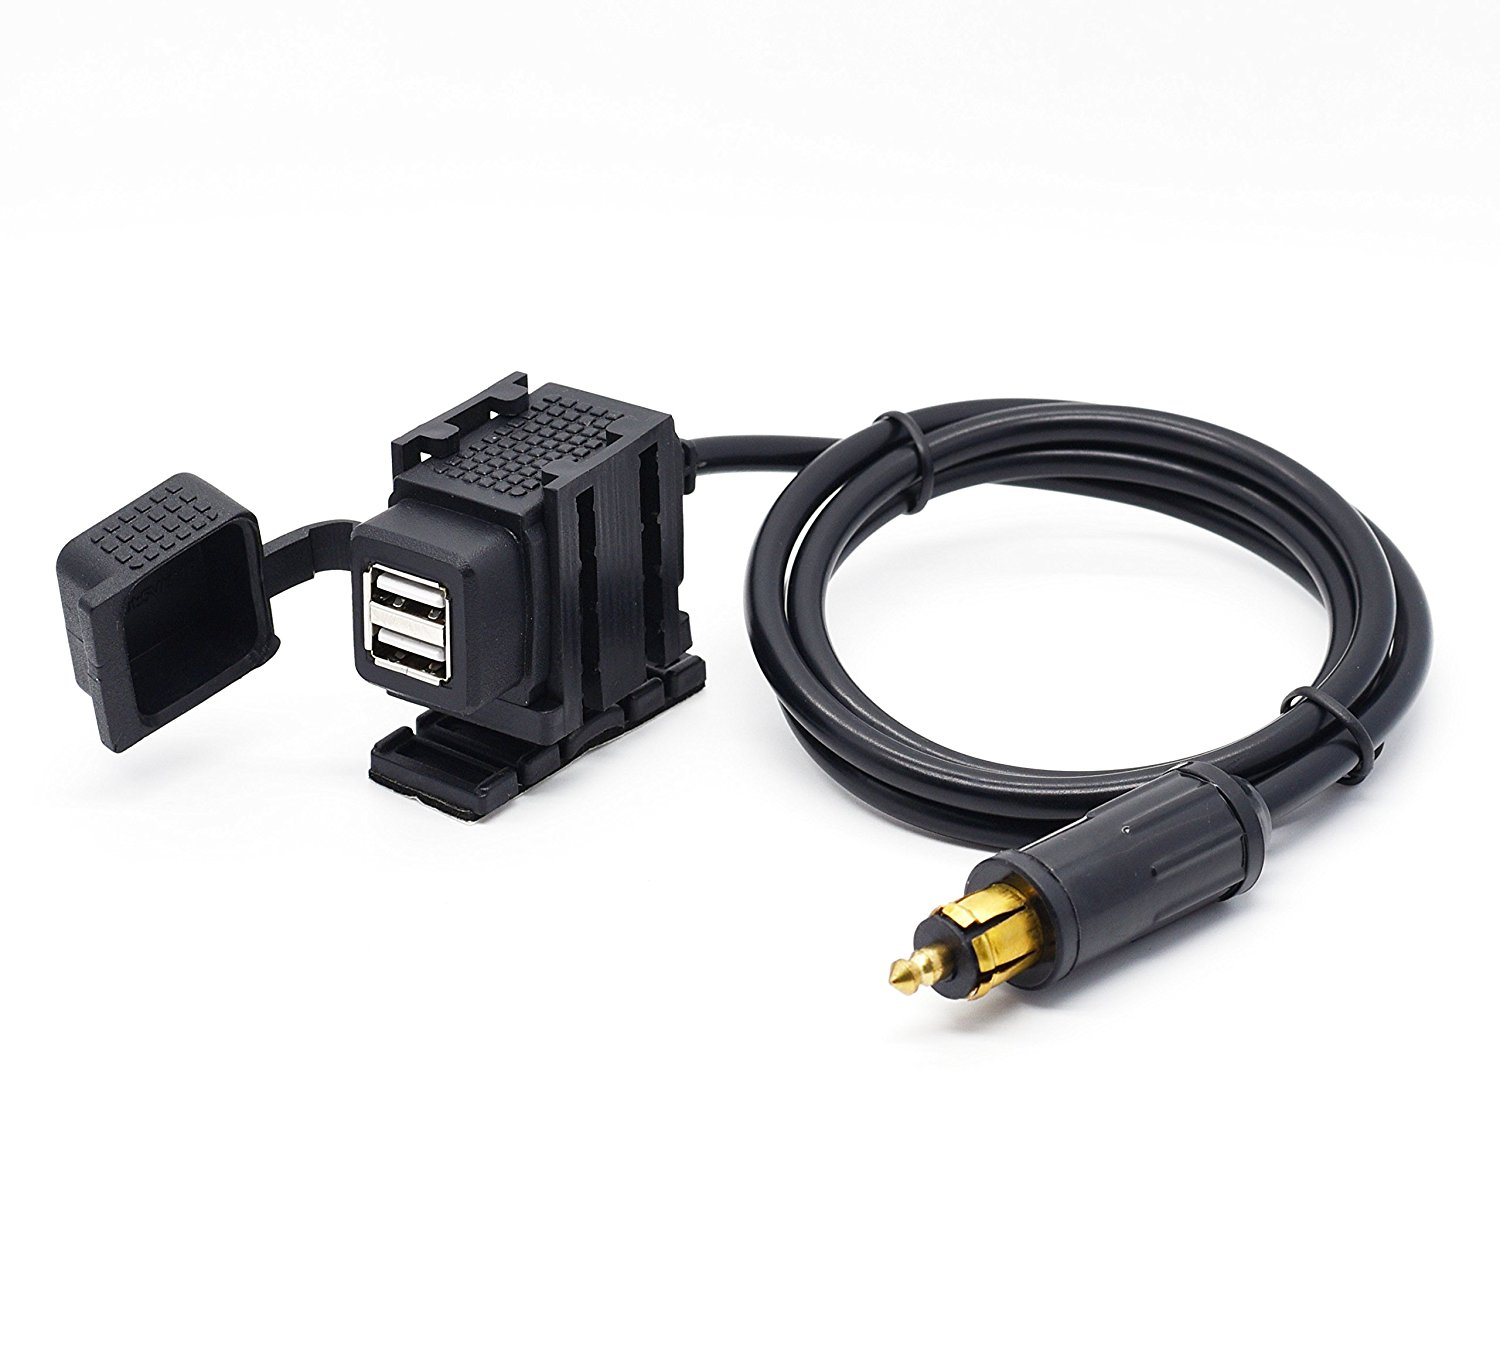 Motorcycle 2.1A Dual USB Charger Socket Power Adapter With 180cm Cable for BMW DIN Hella Plug Phone / iPhone / GPS SatNav